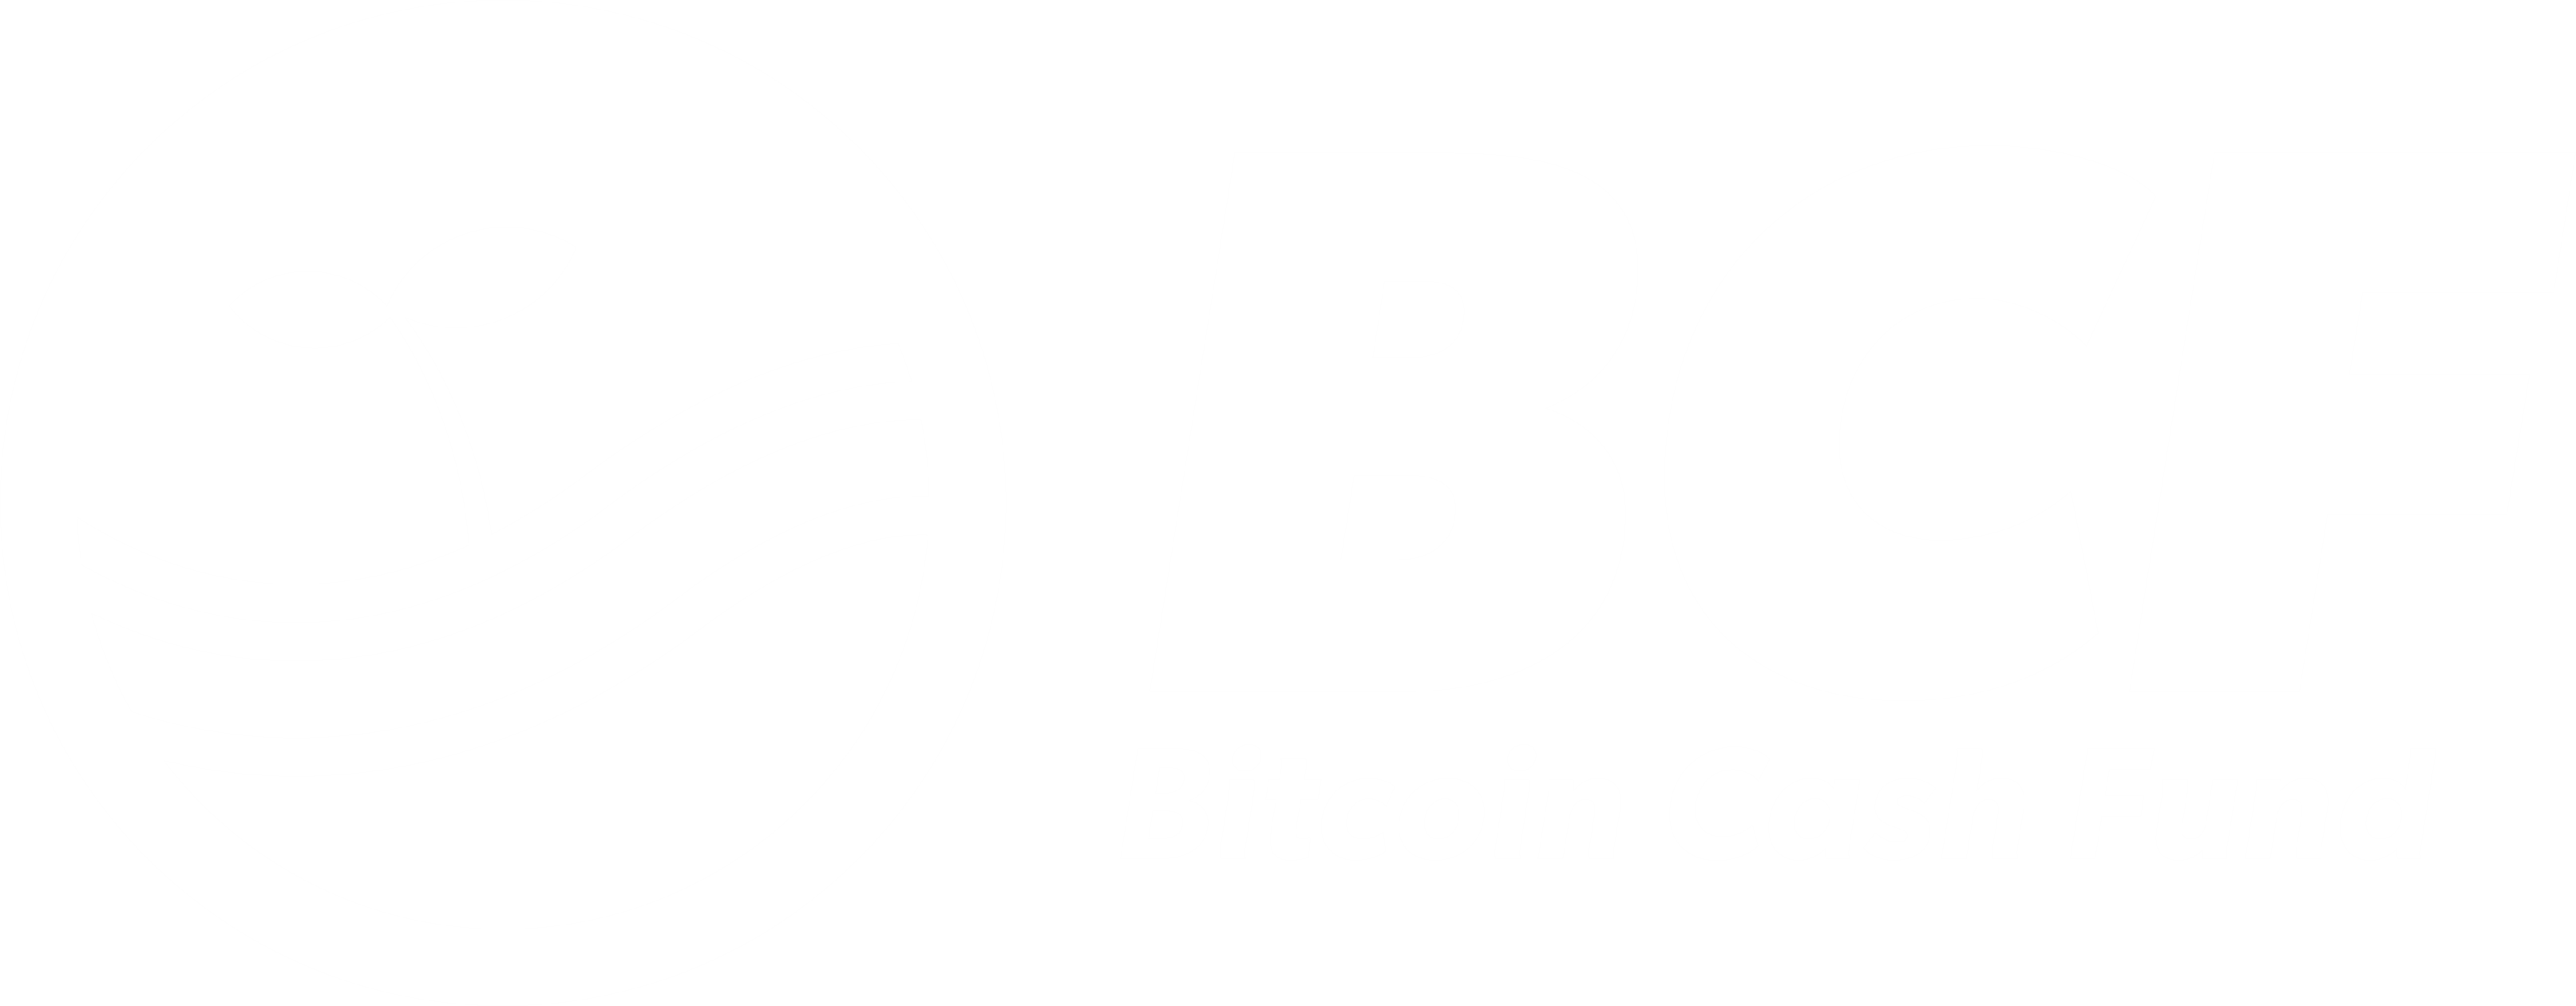 Download Bitcoin Cash Logo Png Full Size Png Image Pngkit